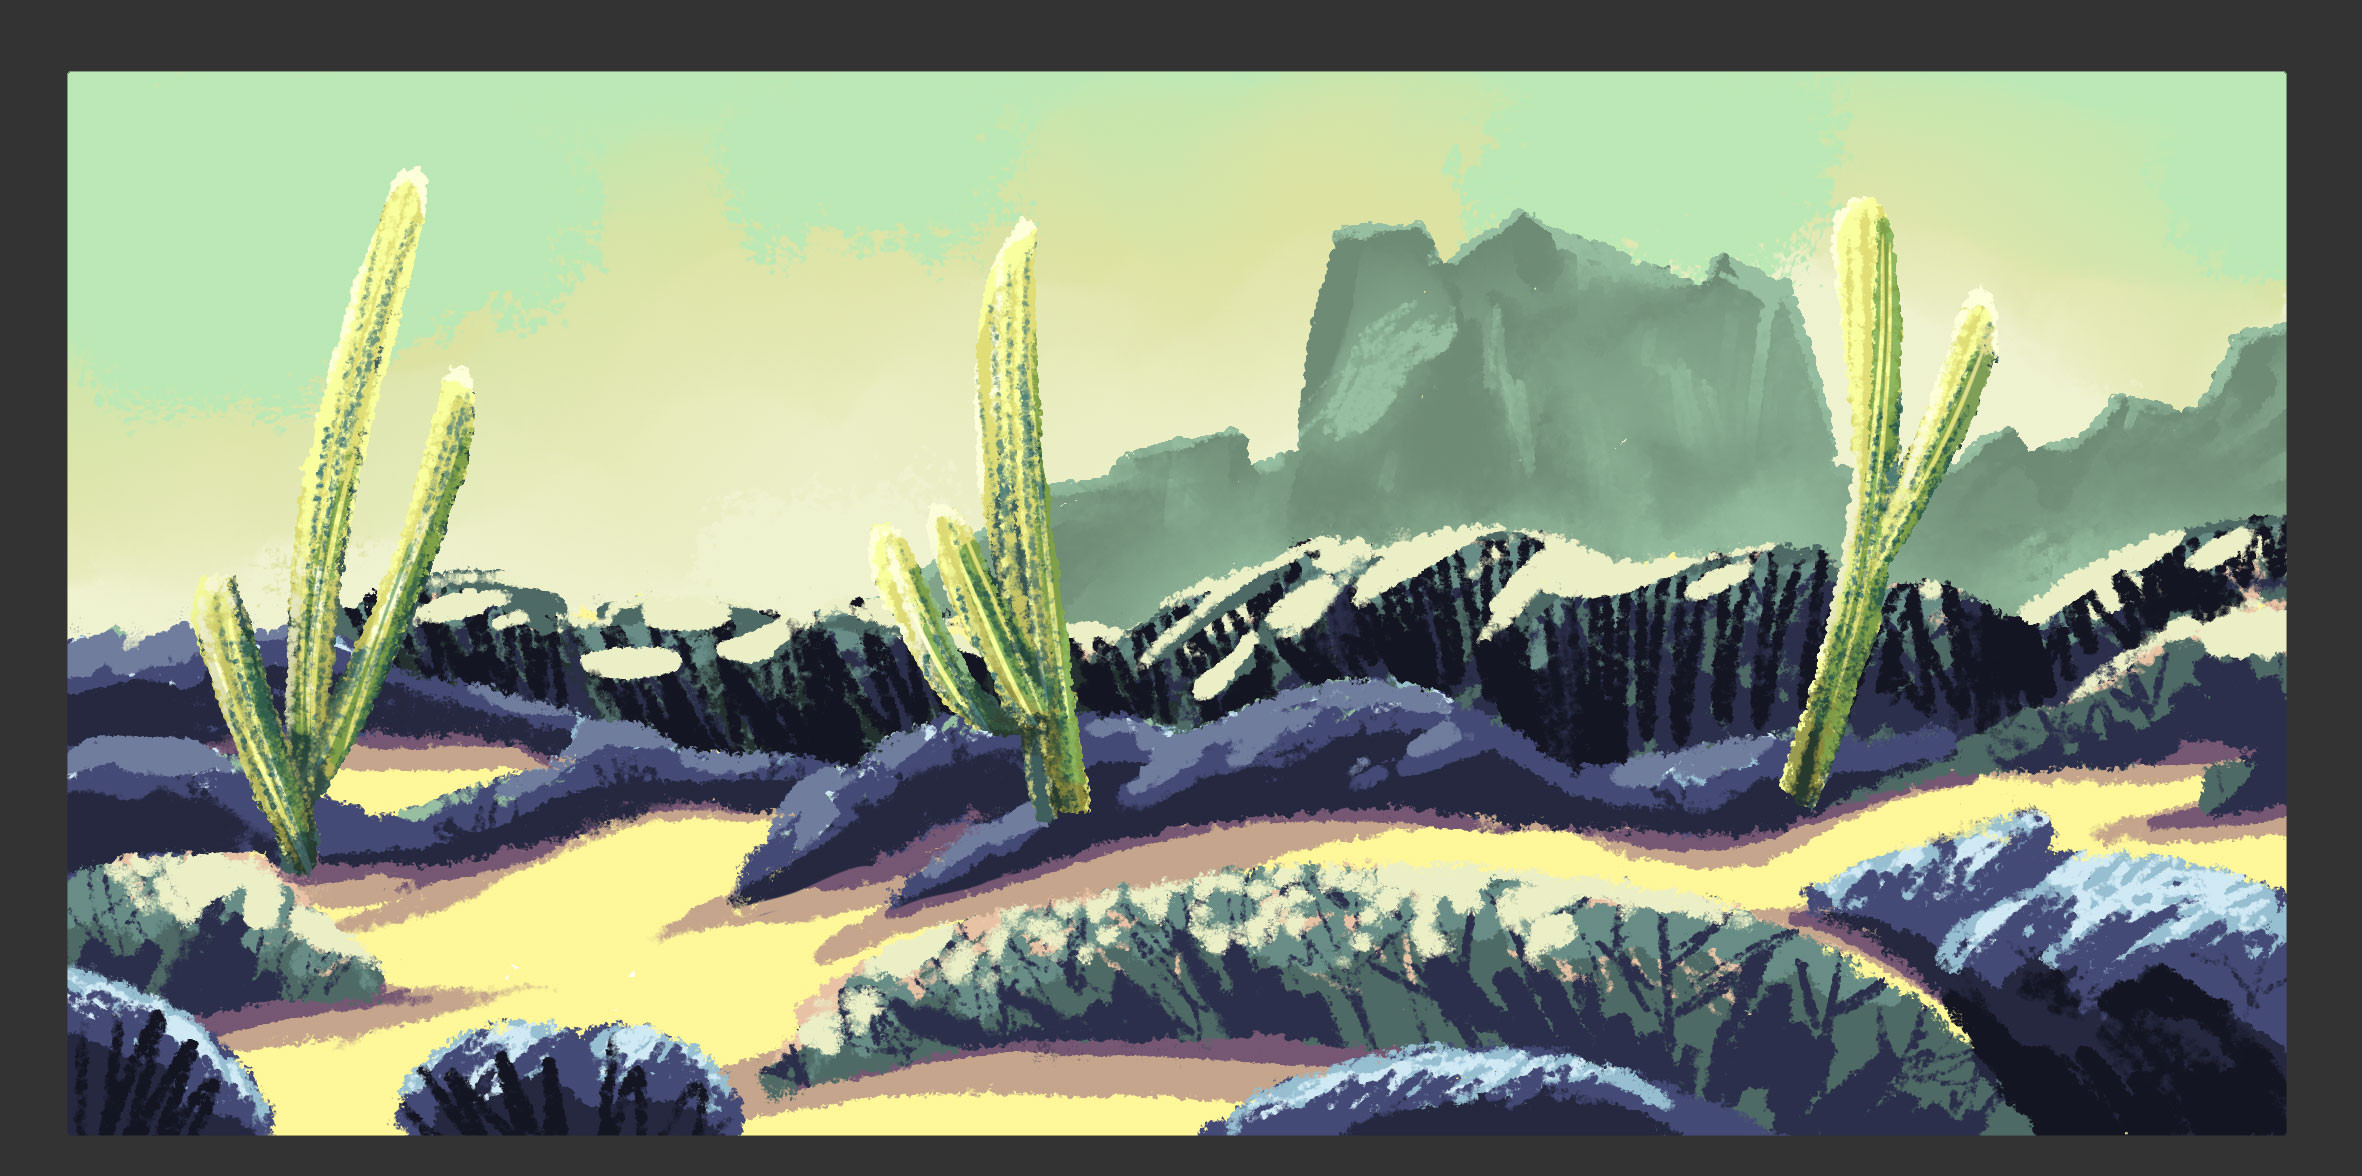 Desert - Afternoon